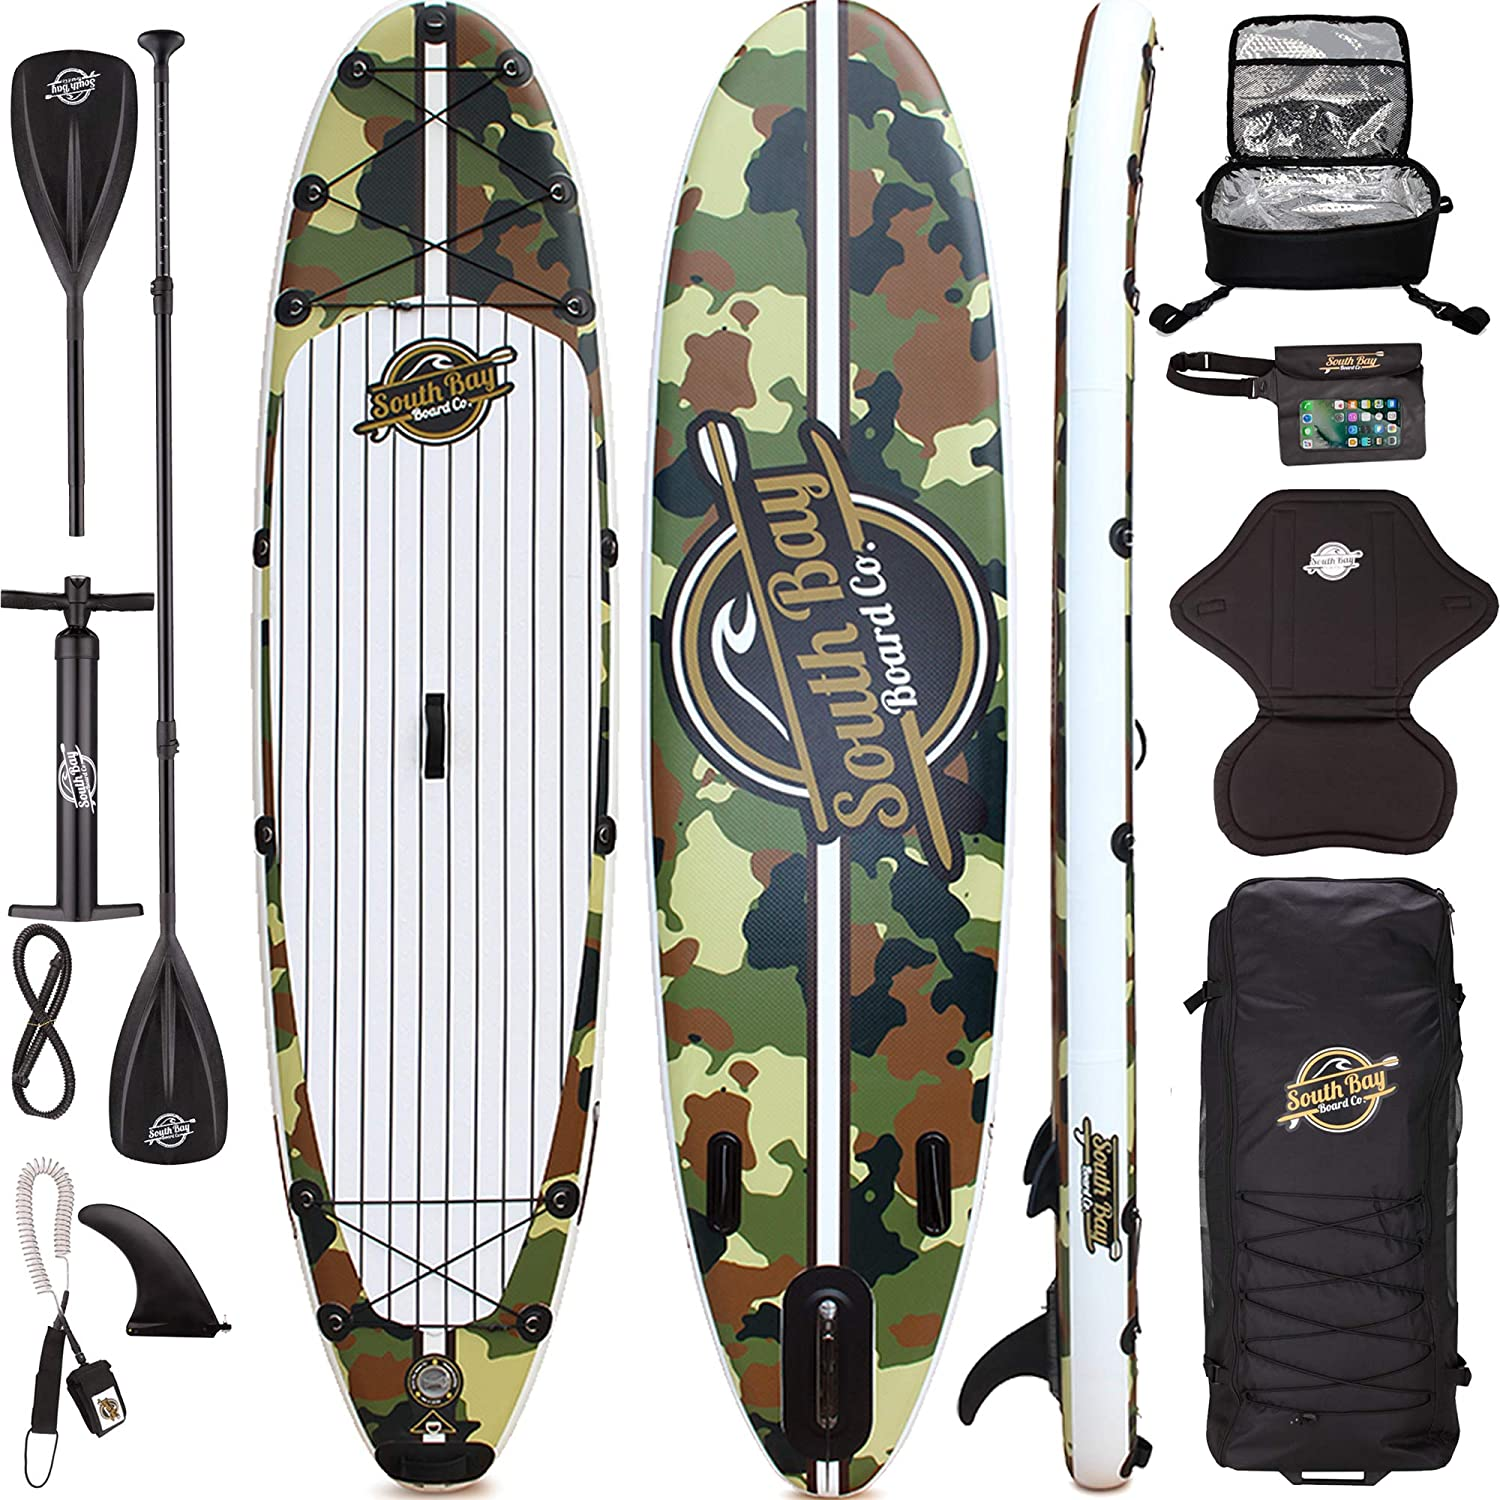 926f428452e6cd Premium Inflatable Stand Up Paddle Board Package - 10 6 Aqua Discover ISUP